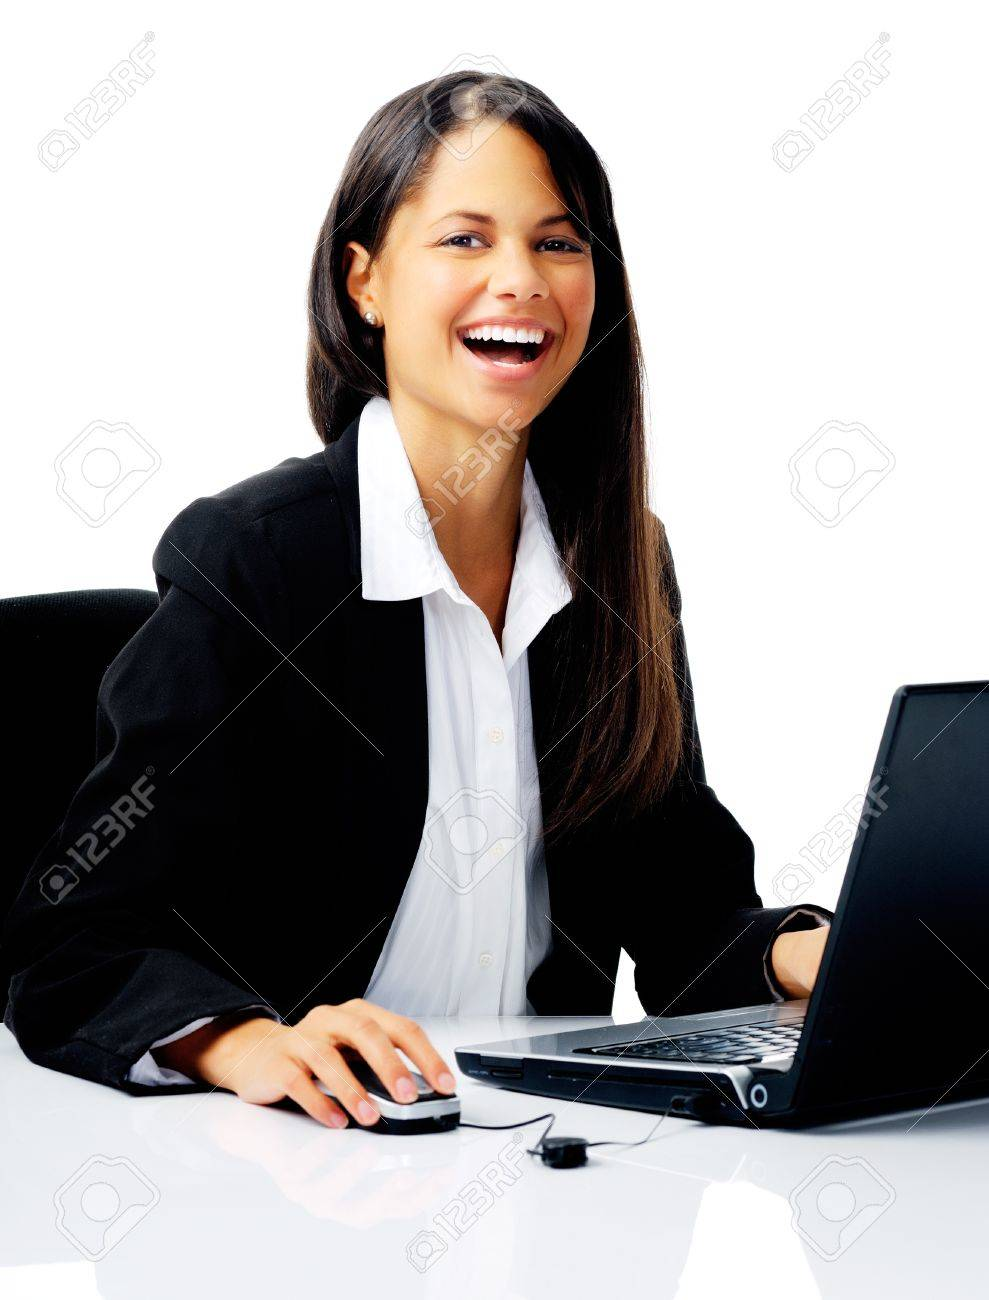 laughing businesswoman uses laptop at her desk, isolated on white Stock Photo - 12347441